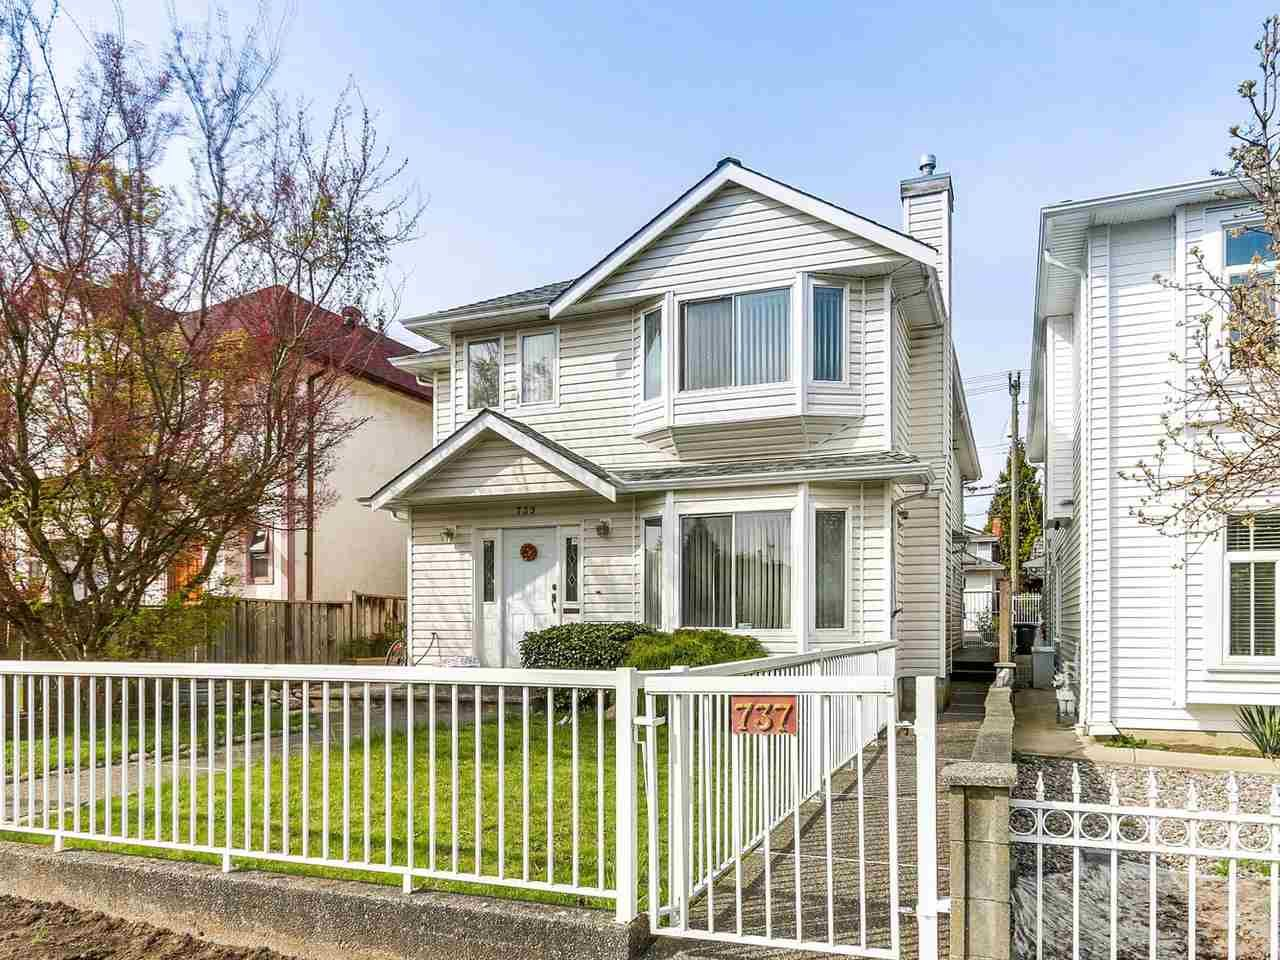 Main Photo: 737 W 69TH Avenue in Vancouver: Marpole 1/2 Duplex for sale (Vancouver West)  : MLS®# R2156415